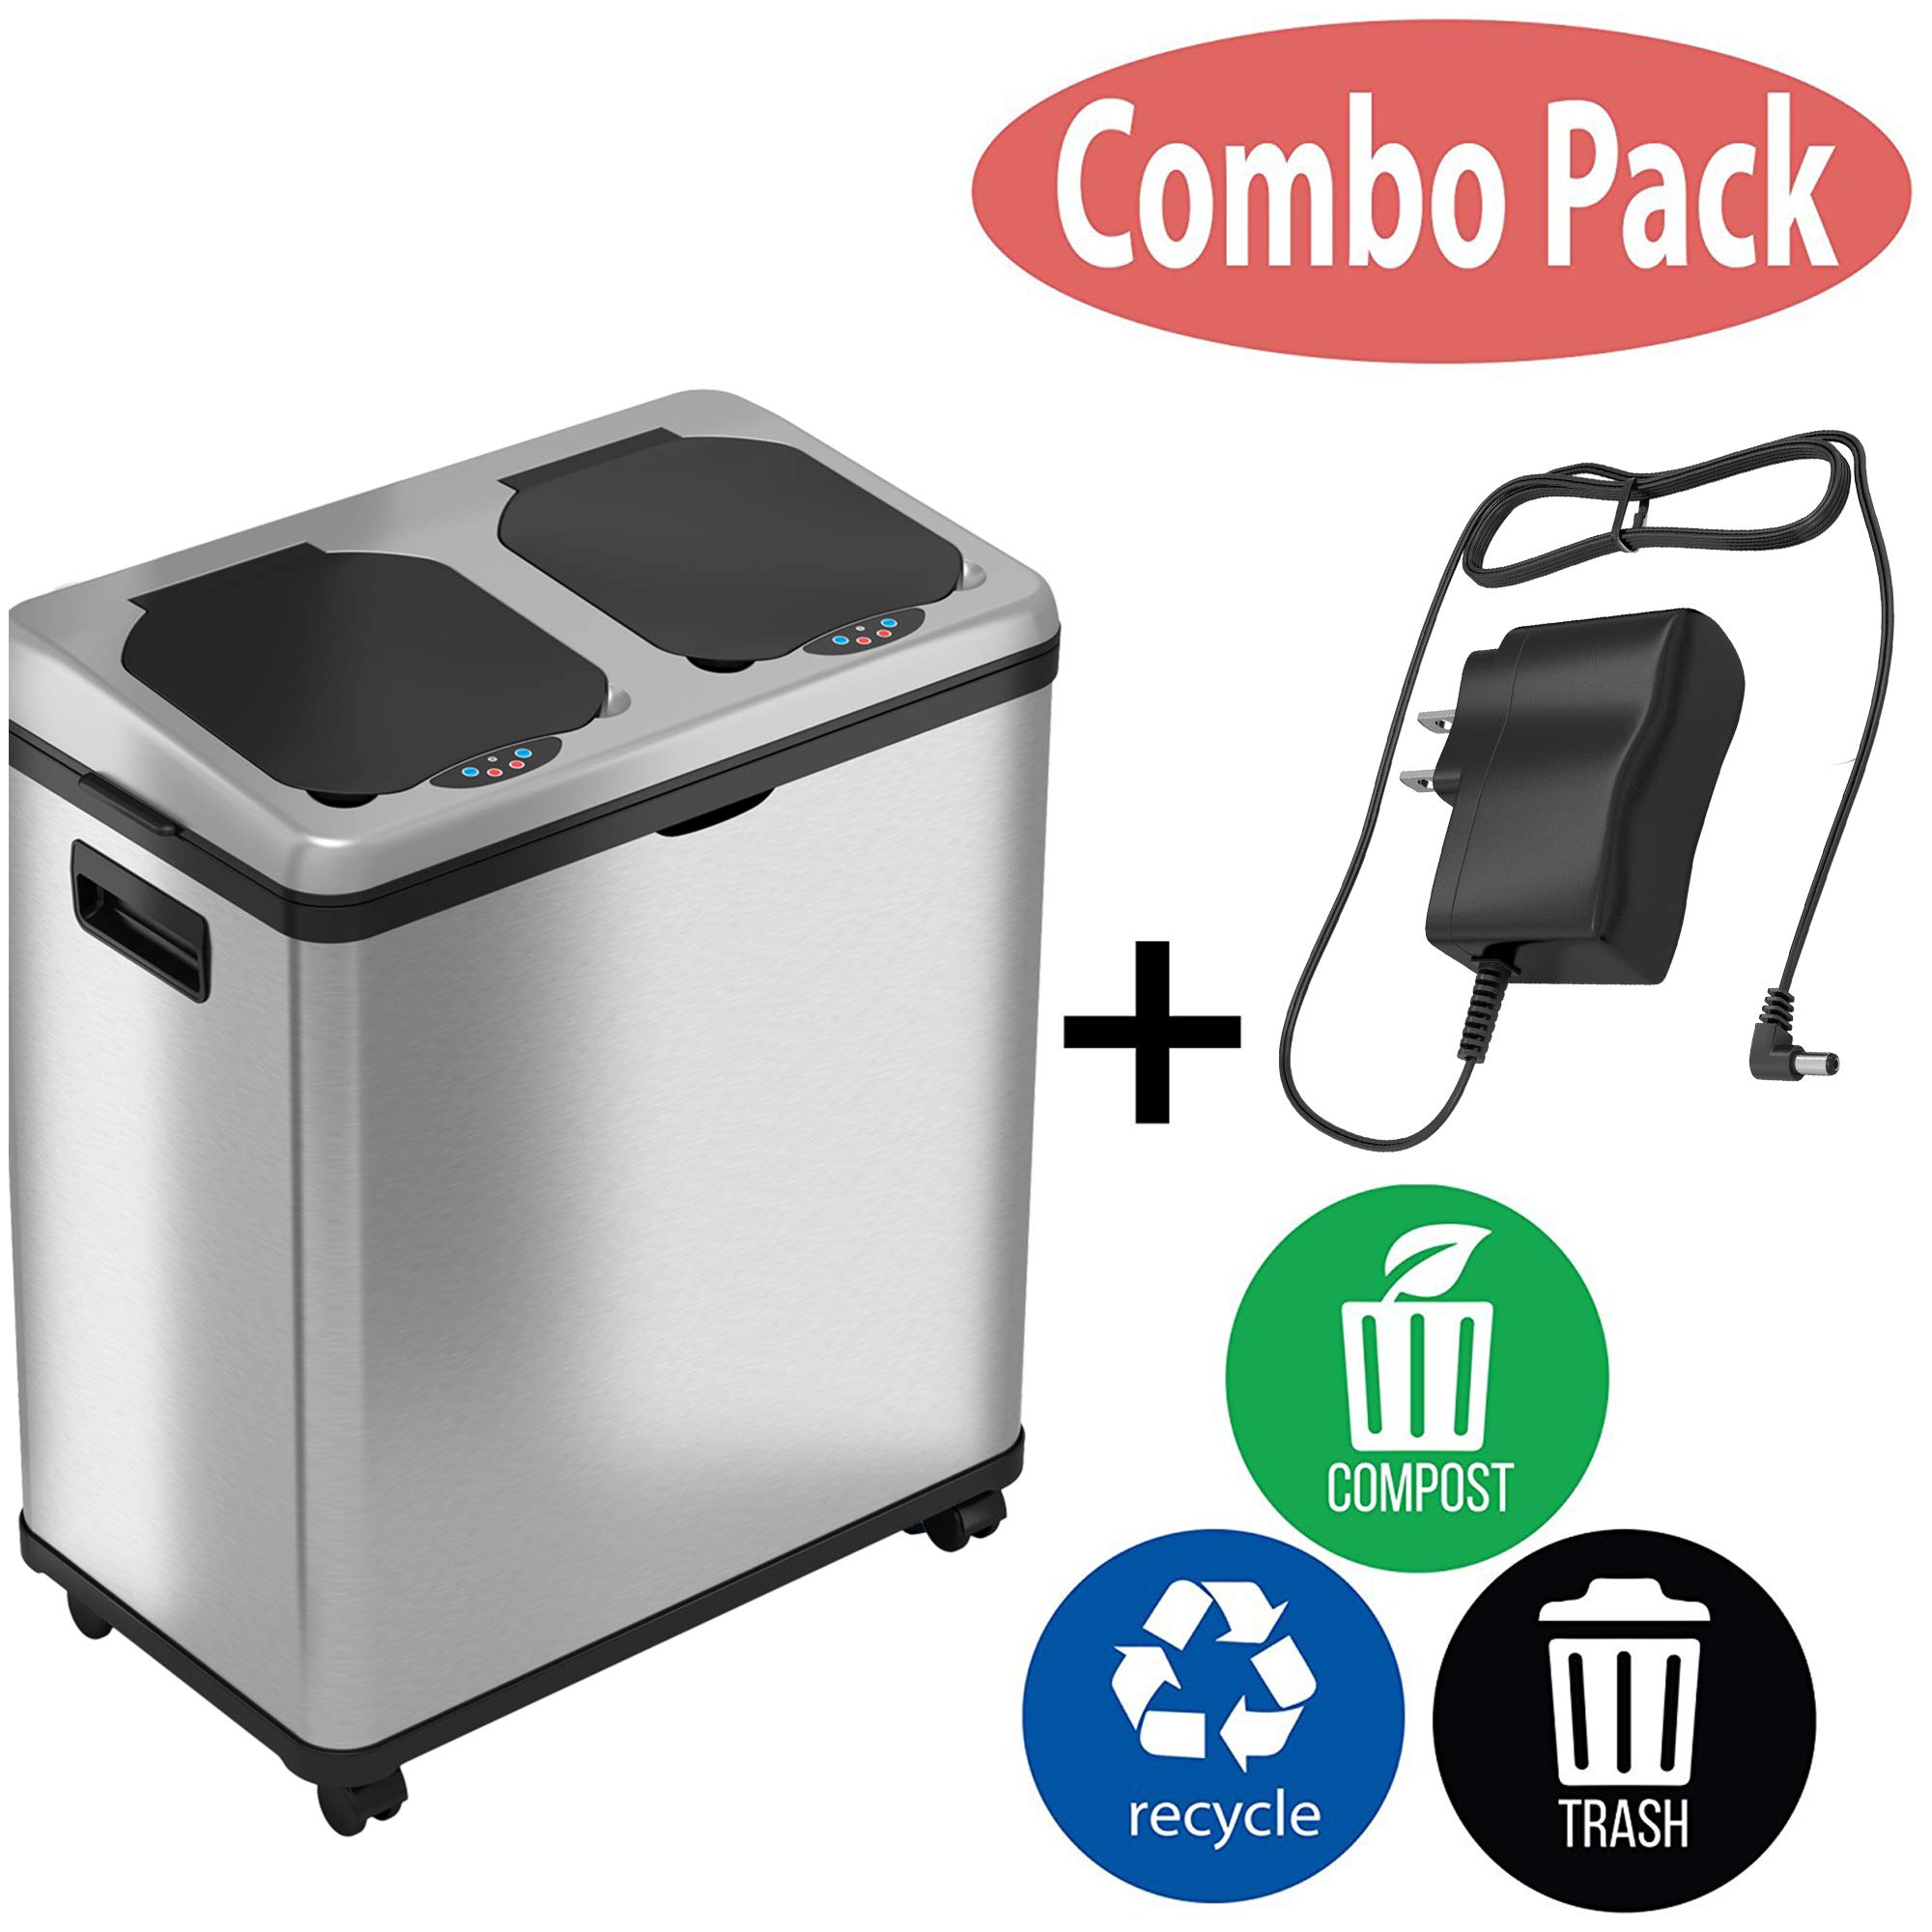 iTouchless 16 Gallon Touchless Trash Can and Recycle Bin Combo Unit Adapter, 2 X 8 Gallon Removable Buckets with Handles, 61 Liters, Stainless Steel, with AC and Decals